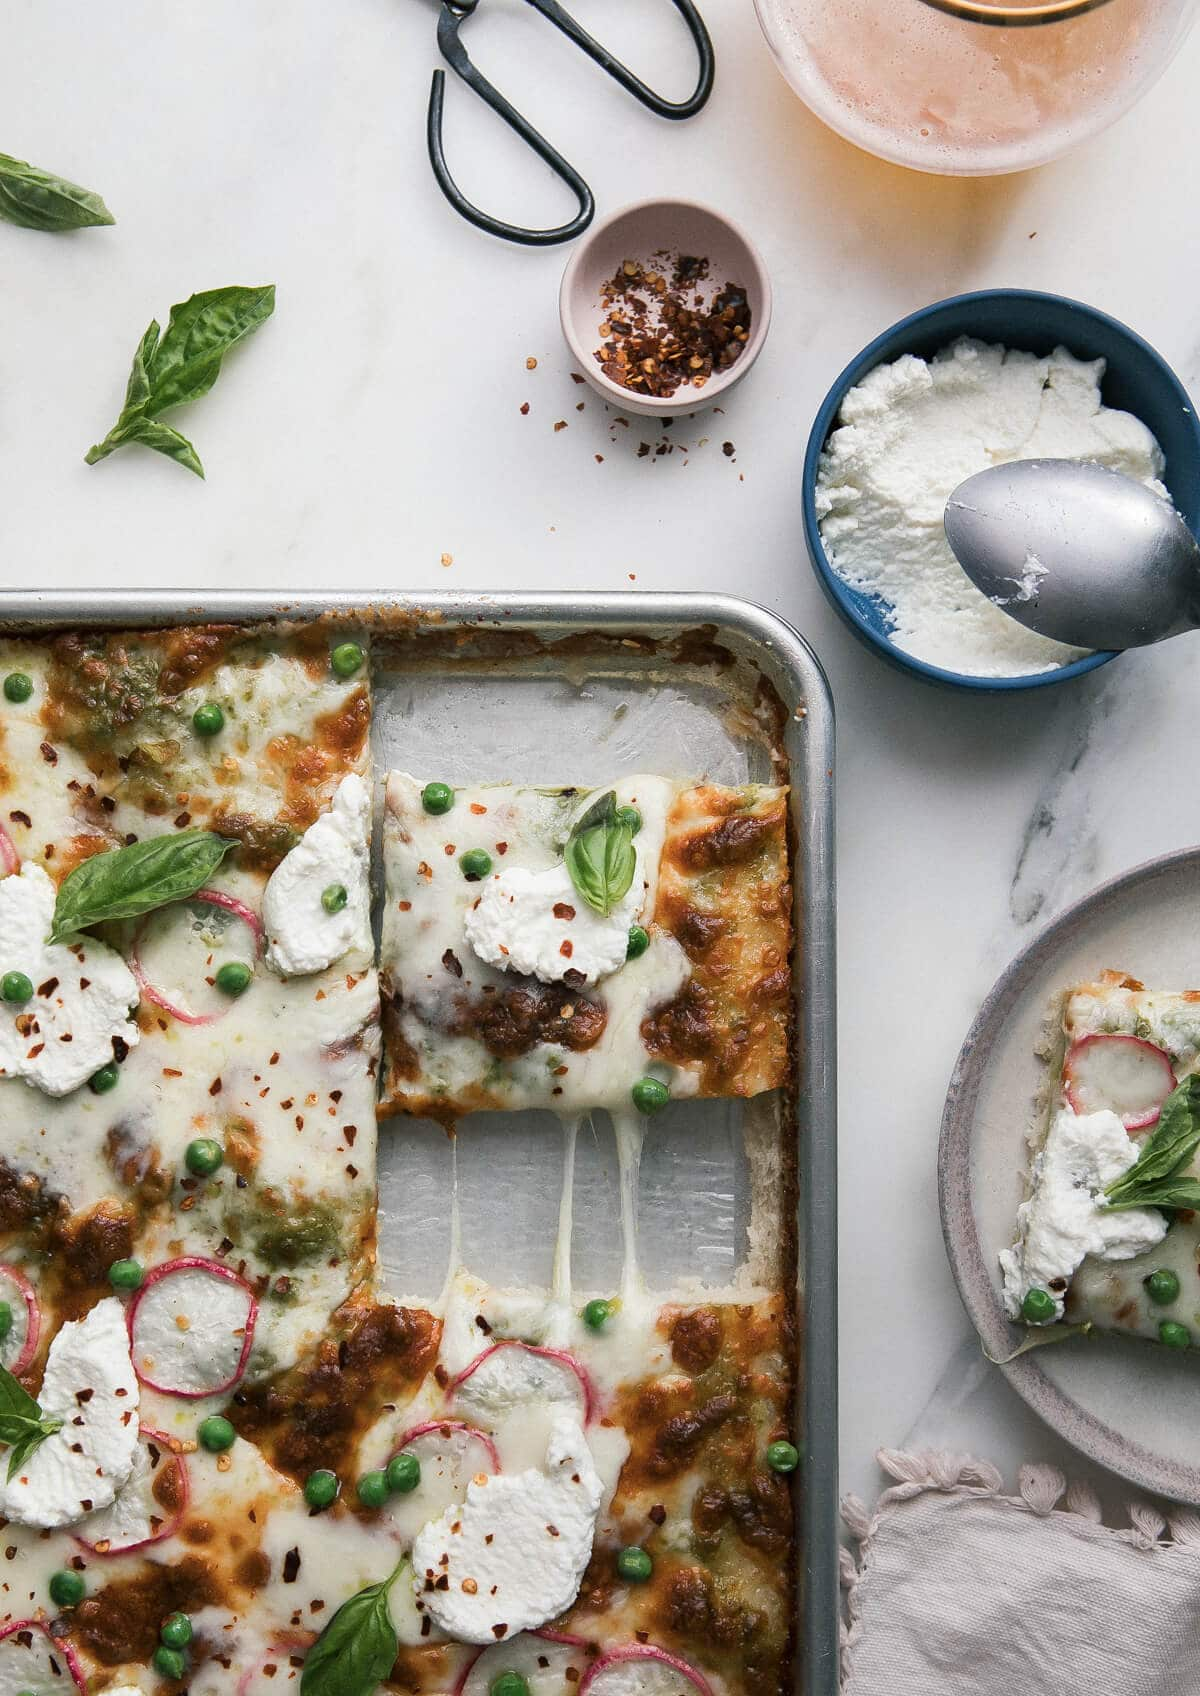 Spring-y Detroit-Style Pizza